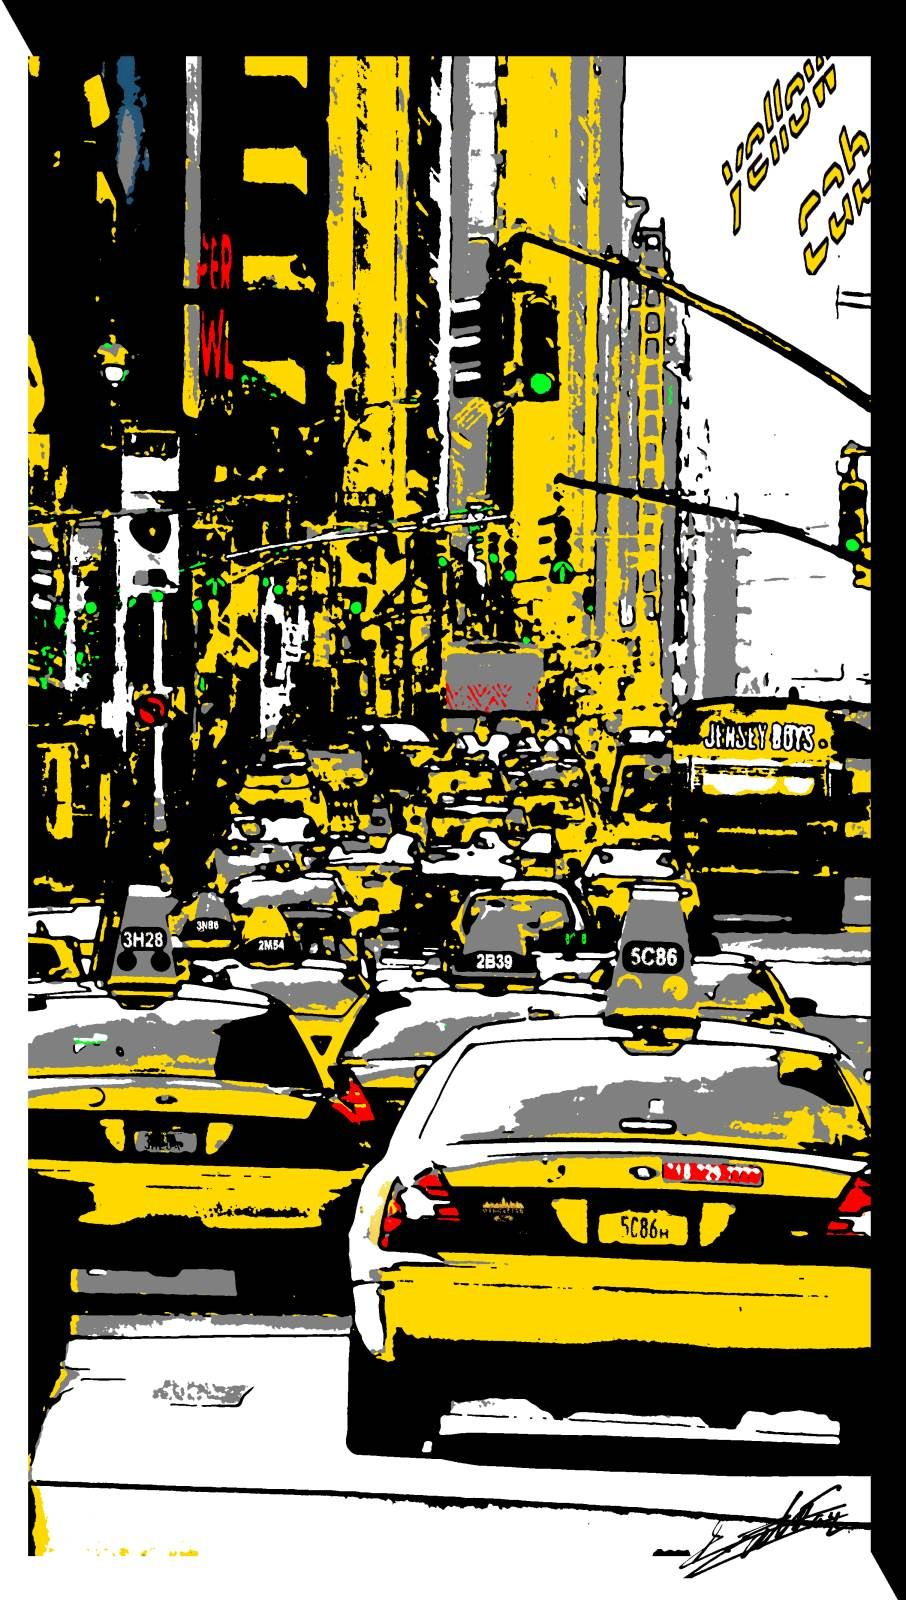 tableau peinture new york taxi jaune pop art noir blanc acrylique embouteillage feux. Black Bedroom Furniture Sets. Home Design Ideas